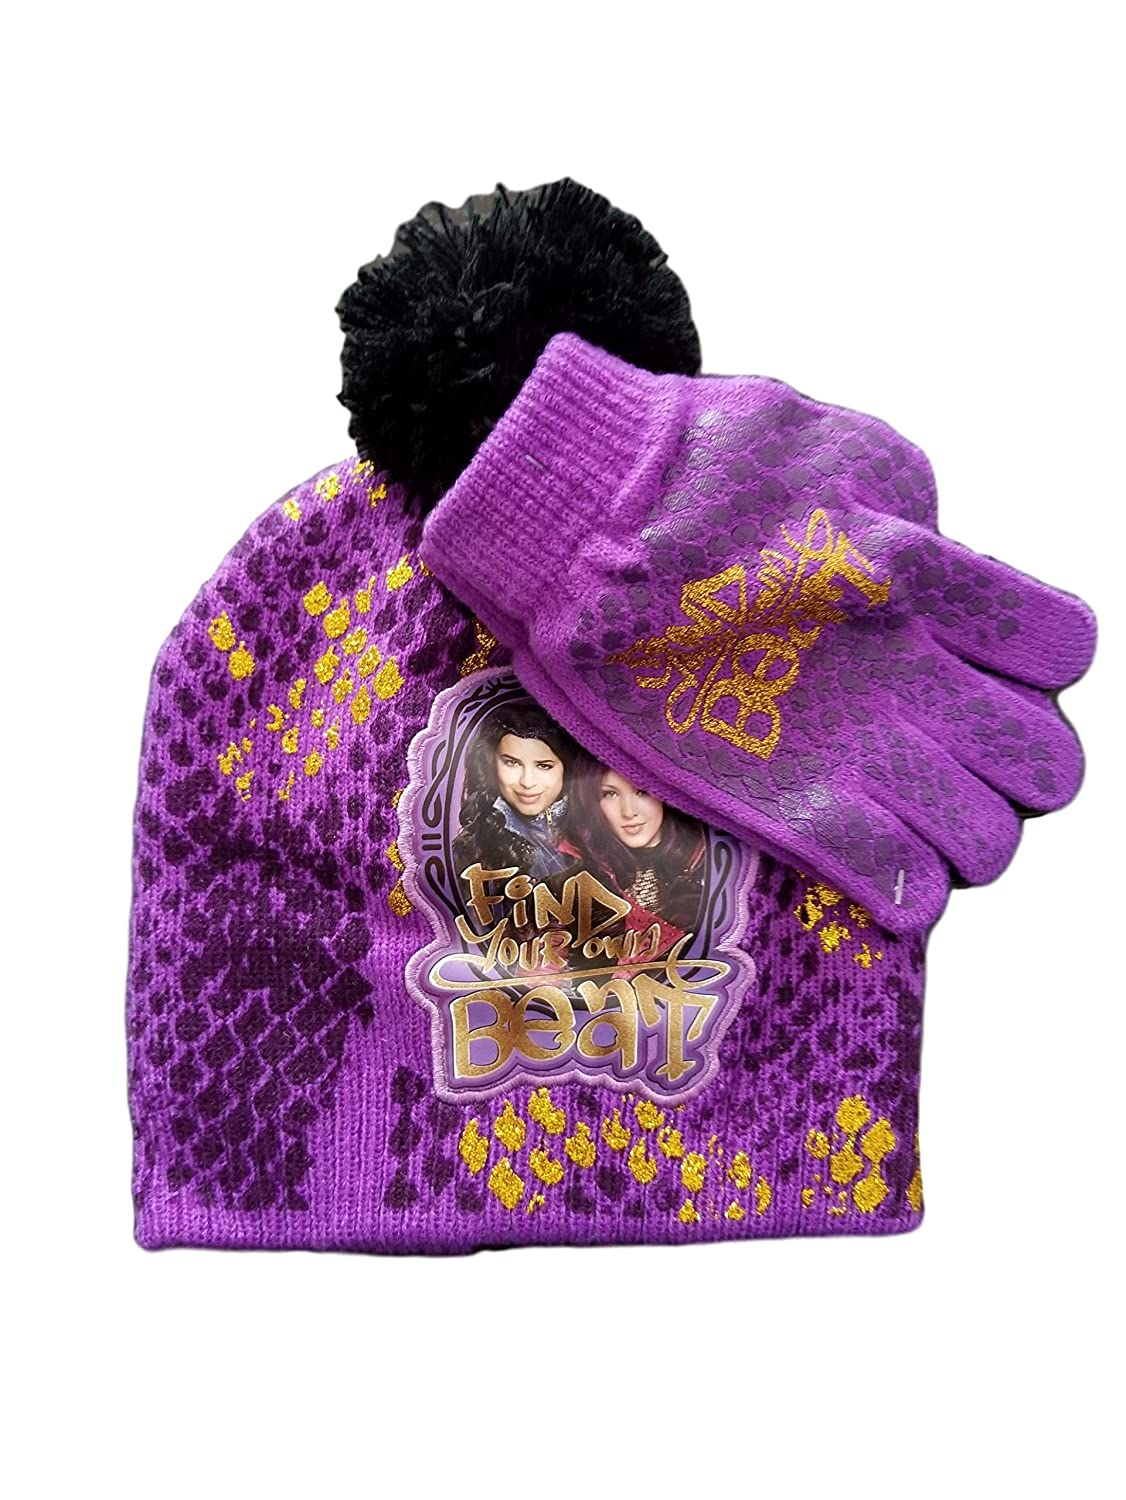 Disney Descendants Beanie/Knit Hat & Glove Set